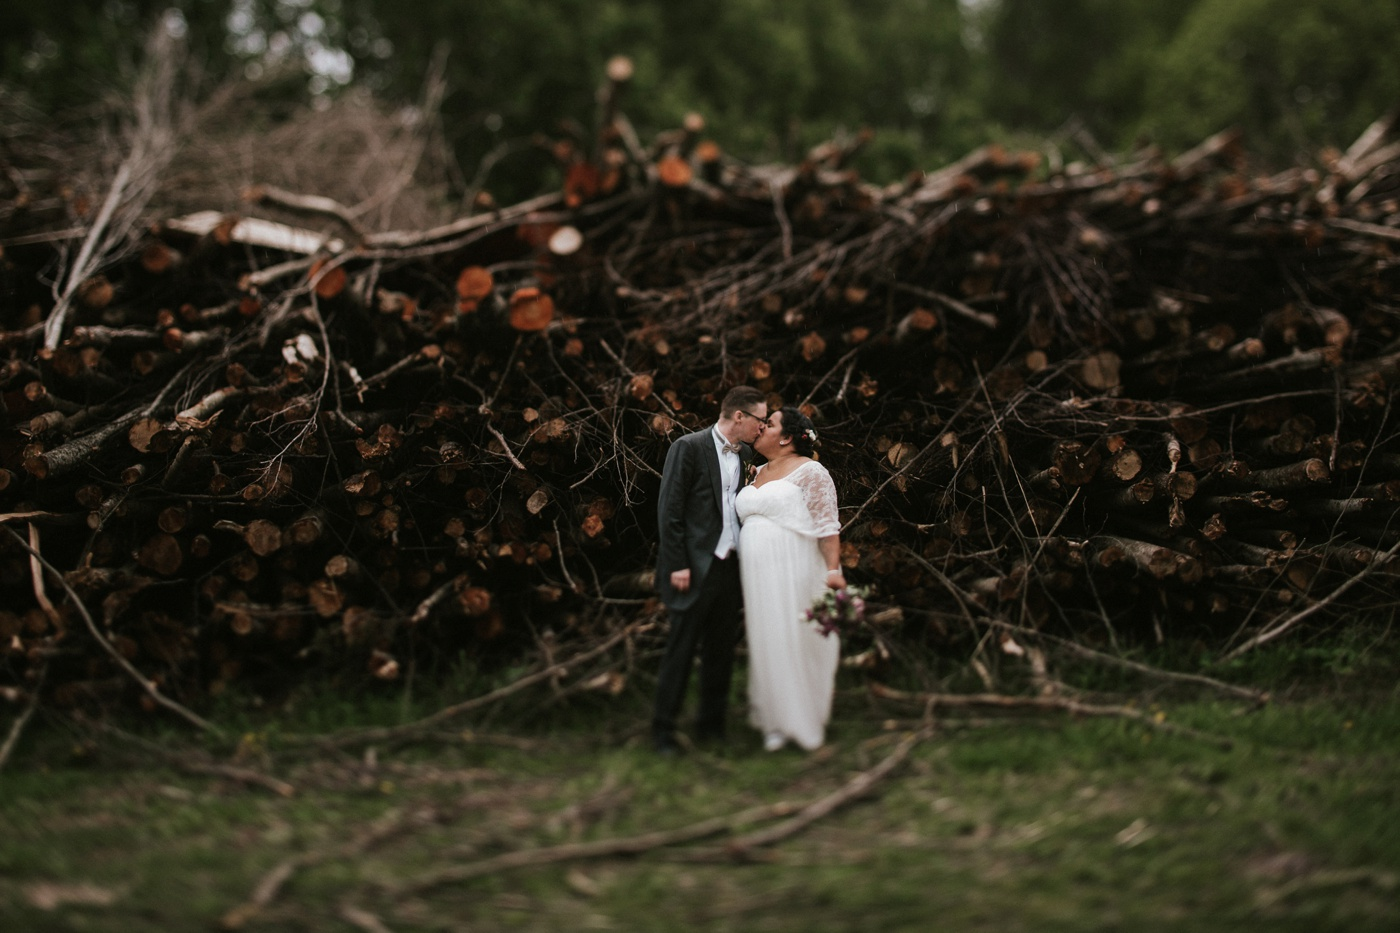 Torbjorn&Paula_Swedish-countryside-rustic-relaxed-wedding_Melbourne-Wedding-Photography_71